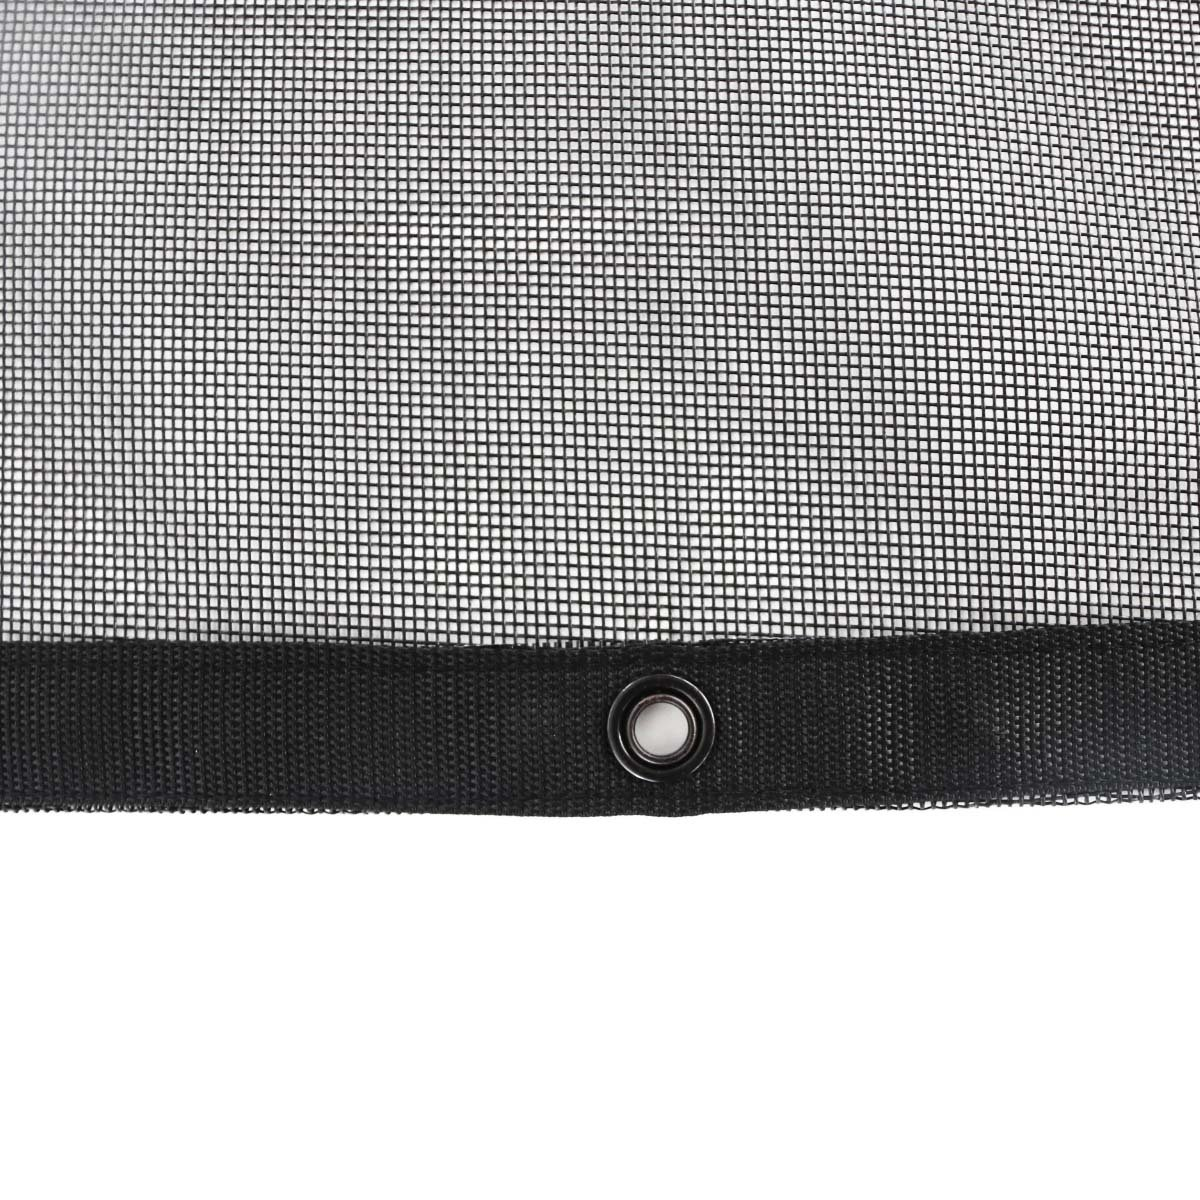 Tentproinc Truck Mesh Tarp 9' X 12' Black Heavy Duty Cover Reinforced Double Needle Stitch Webbing Ripping and Tearing Stop, No Rust Thicker Brass Grommets - 3 Years Limited Warranty by Tentproinc (Image #3)